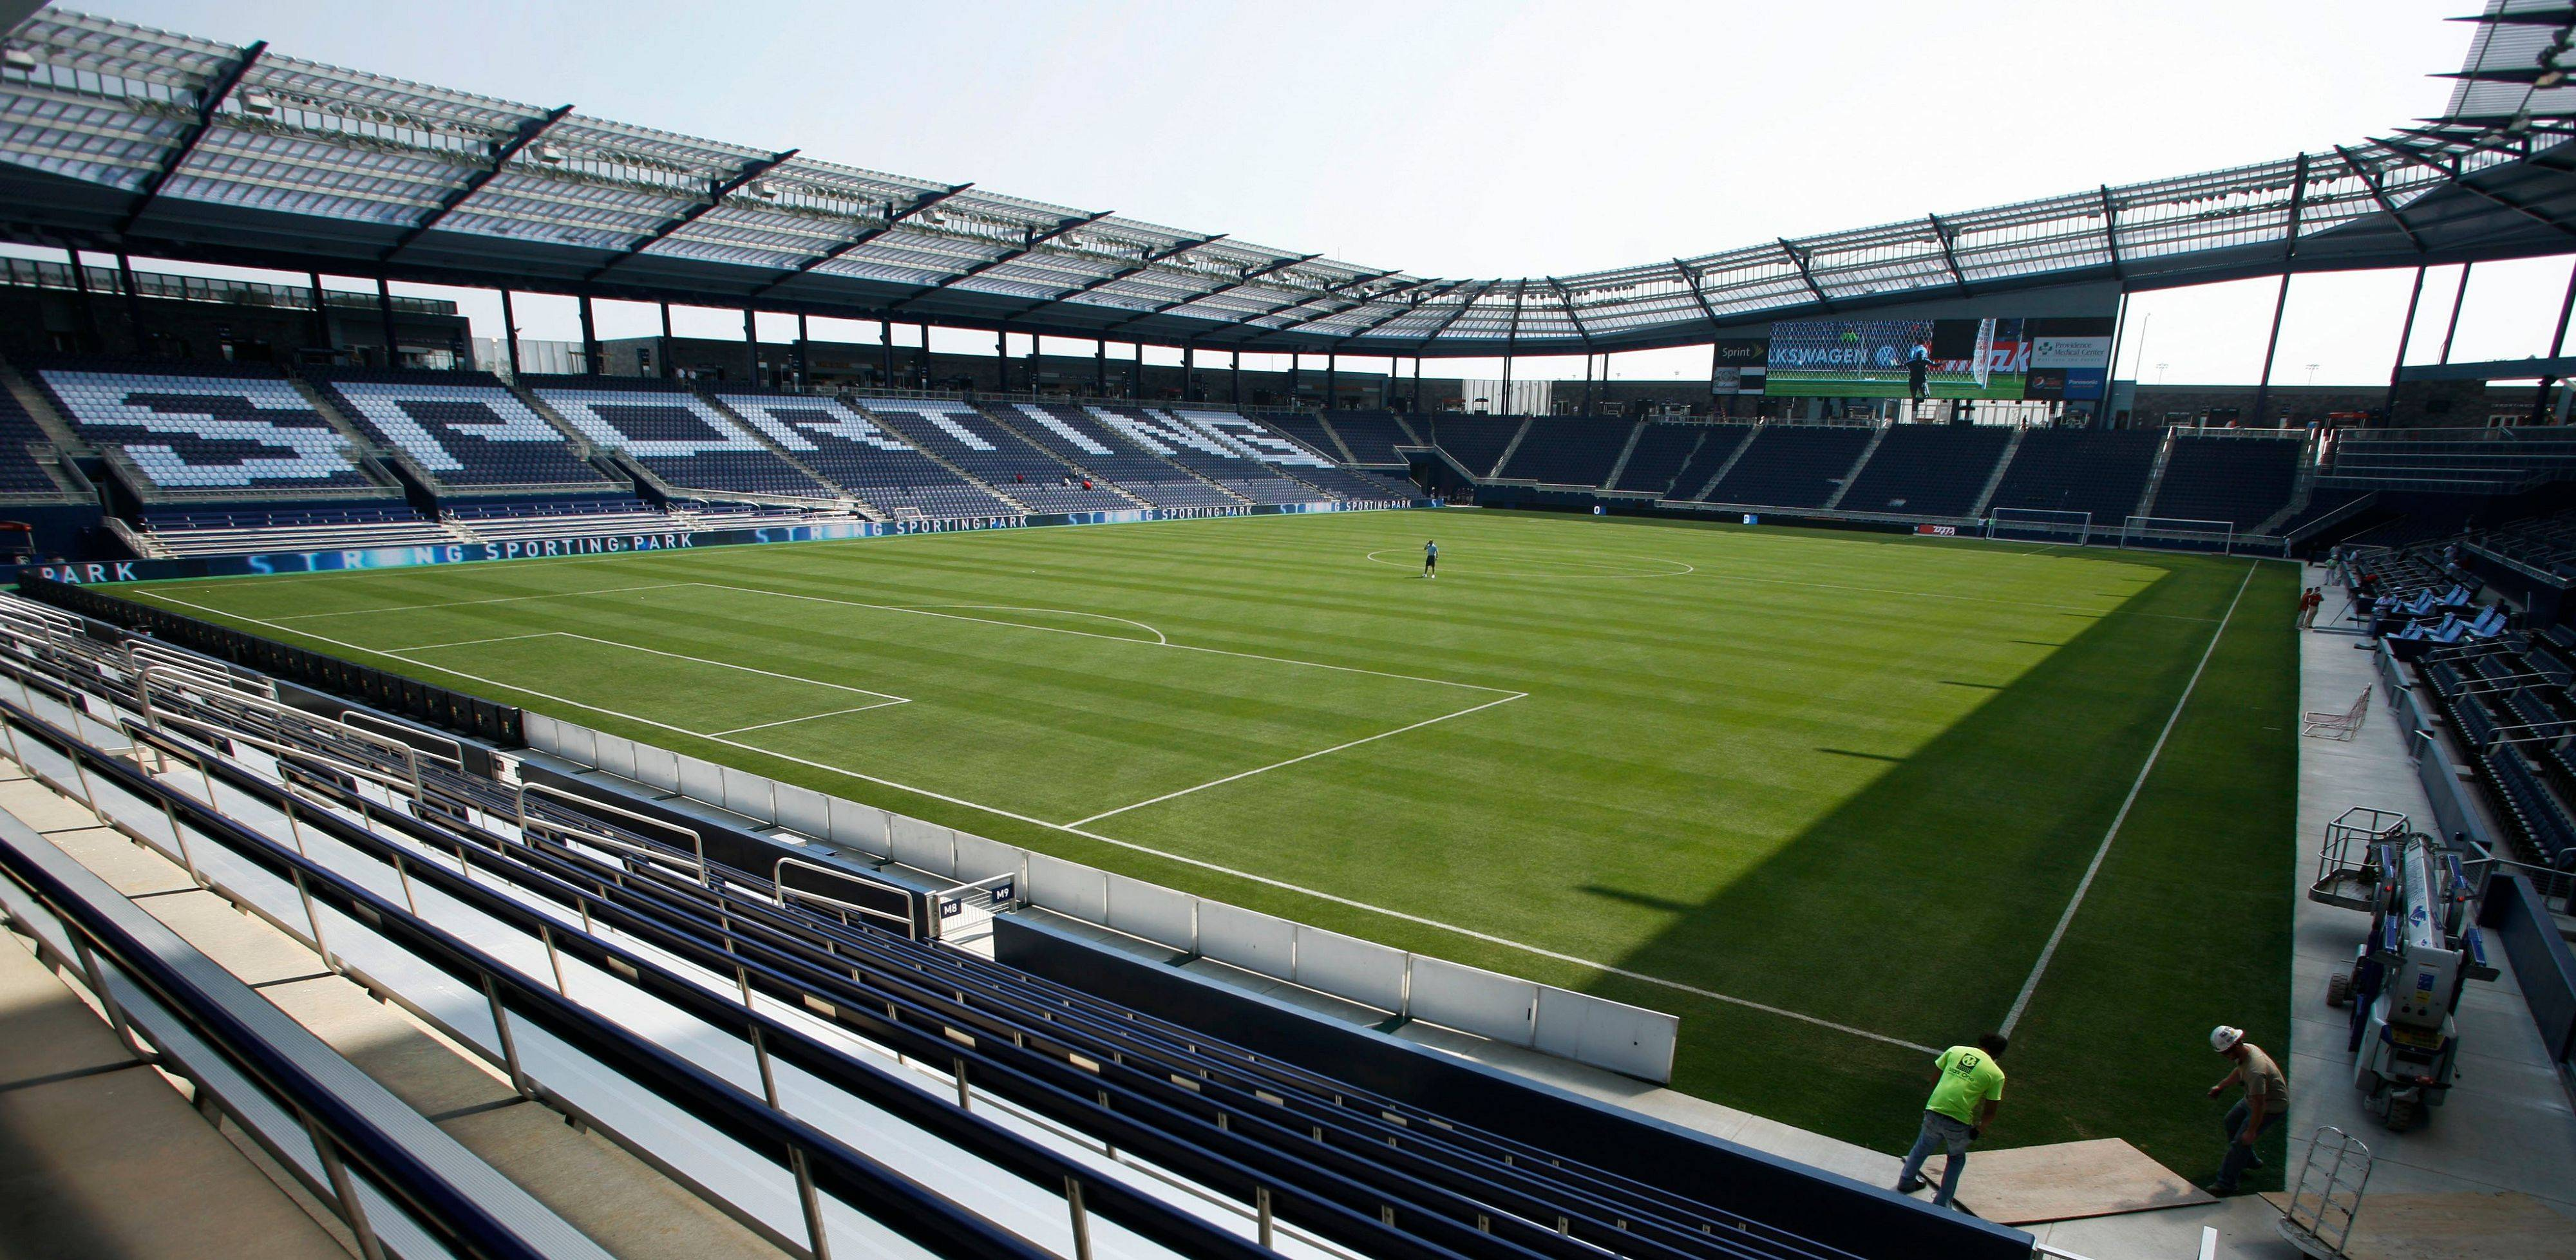 Workers put in the final touches at Livestrong Sporting Park in Kansas City, Kan., on Tuesday The high-tech, $200 million MLS home for Sporting Kansas City opens Thursday nightwhen they host the Chicago Fire.